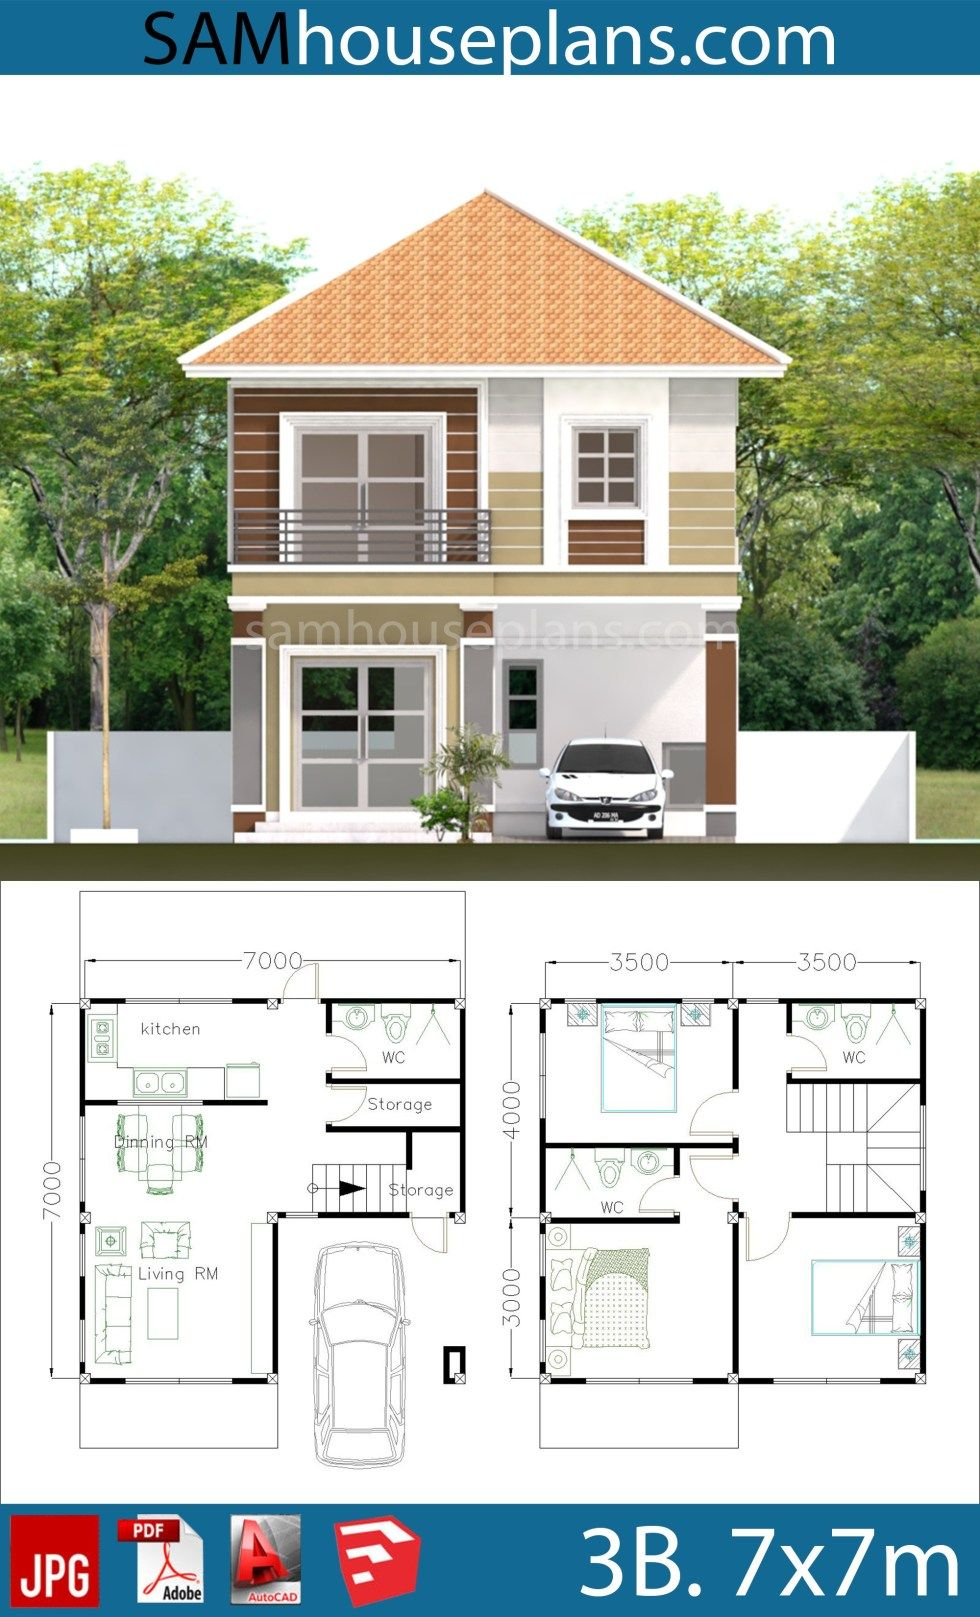 House Plans 7x7m with 3 Bedrooms | My house plans ...